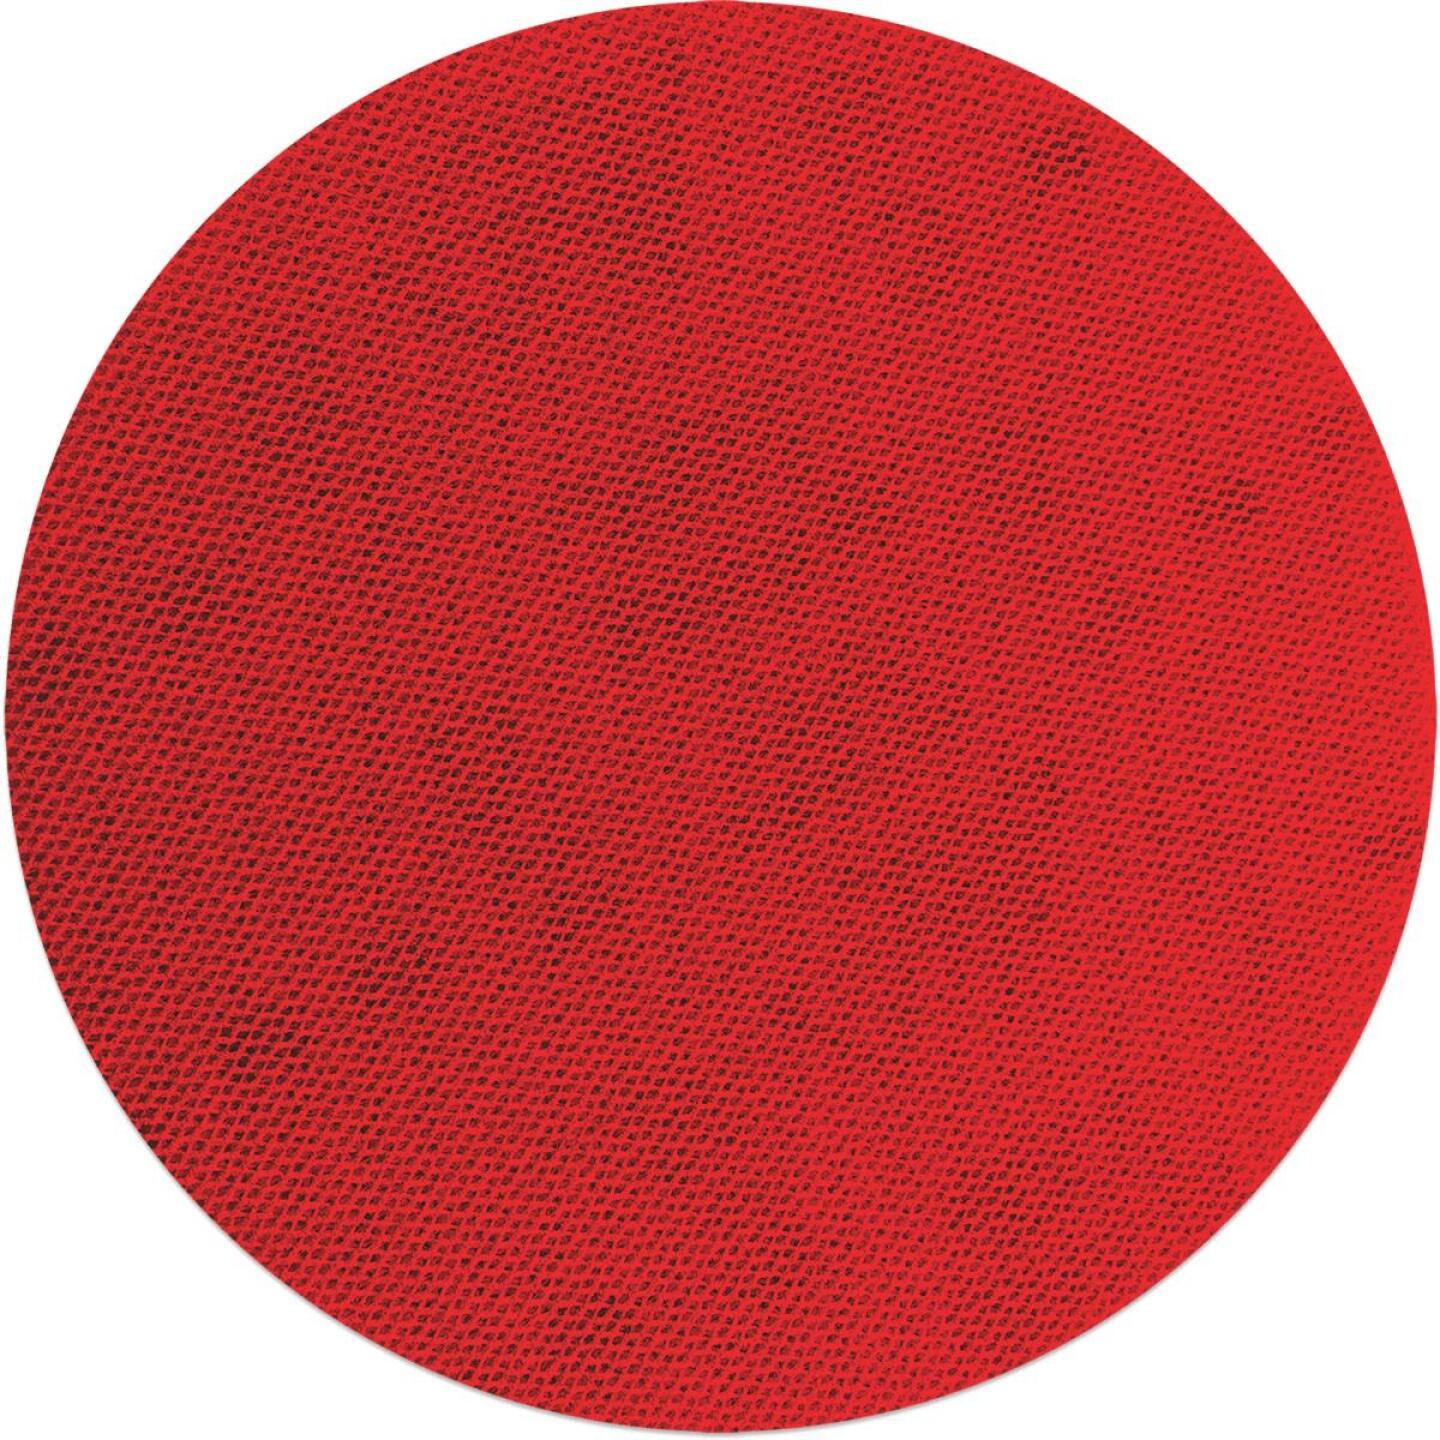 Diablo SandNet 5 In. 80 Grit Sanding Disc with Connection Pad (40-Pack) Image 1